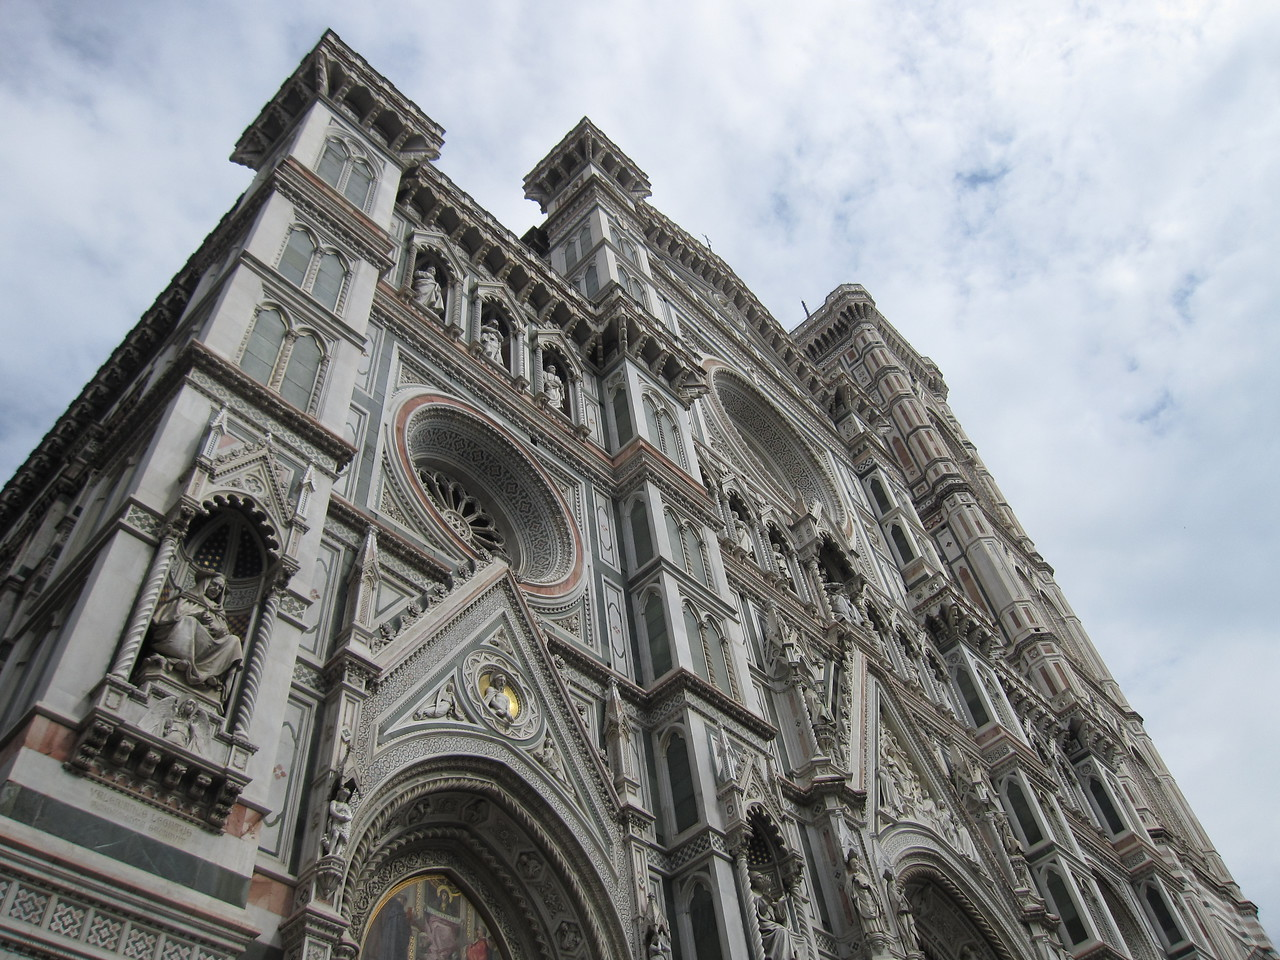 Looking up the facade of Florence Cathedral in Florence, Italy